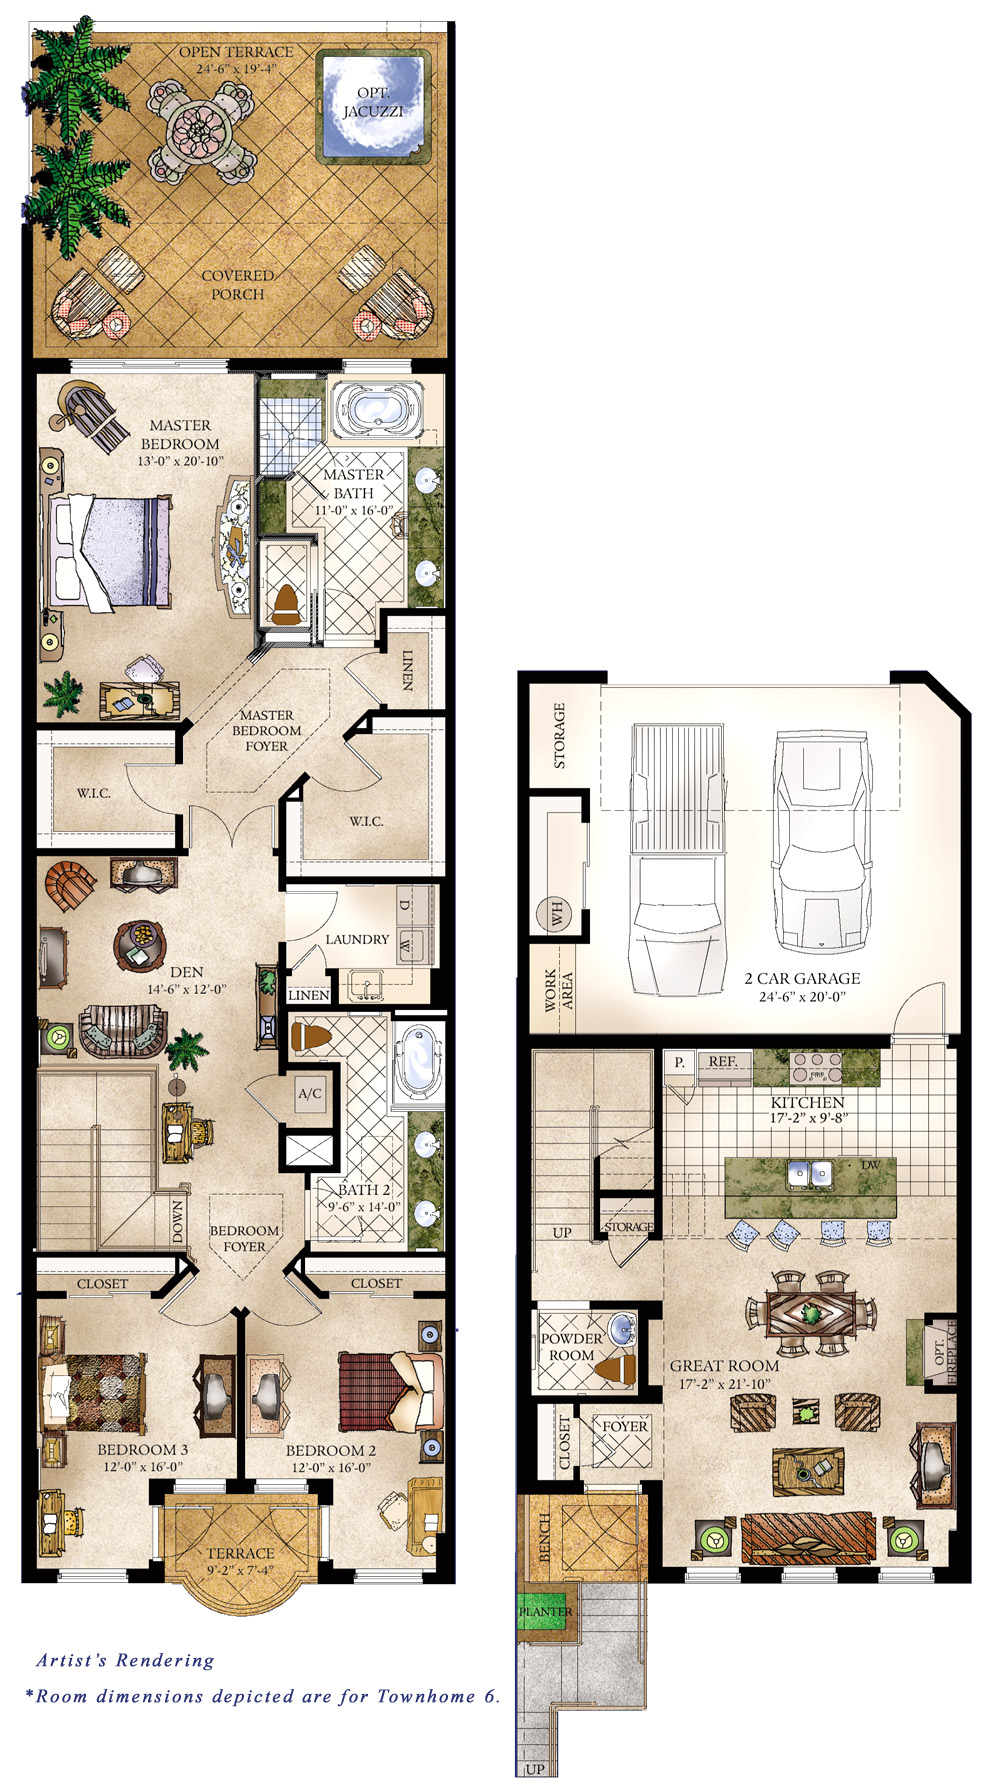 Costa verano condominiums and townhomes in jacksonville for 5 bedroom townhouse floor plans